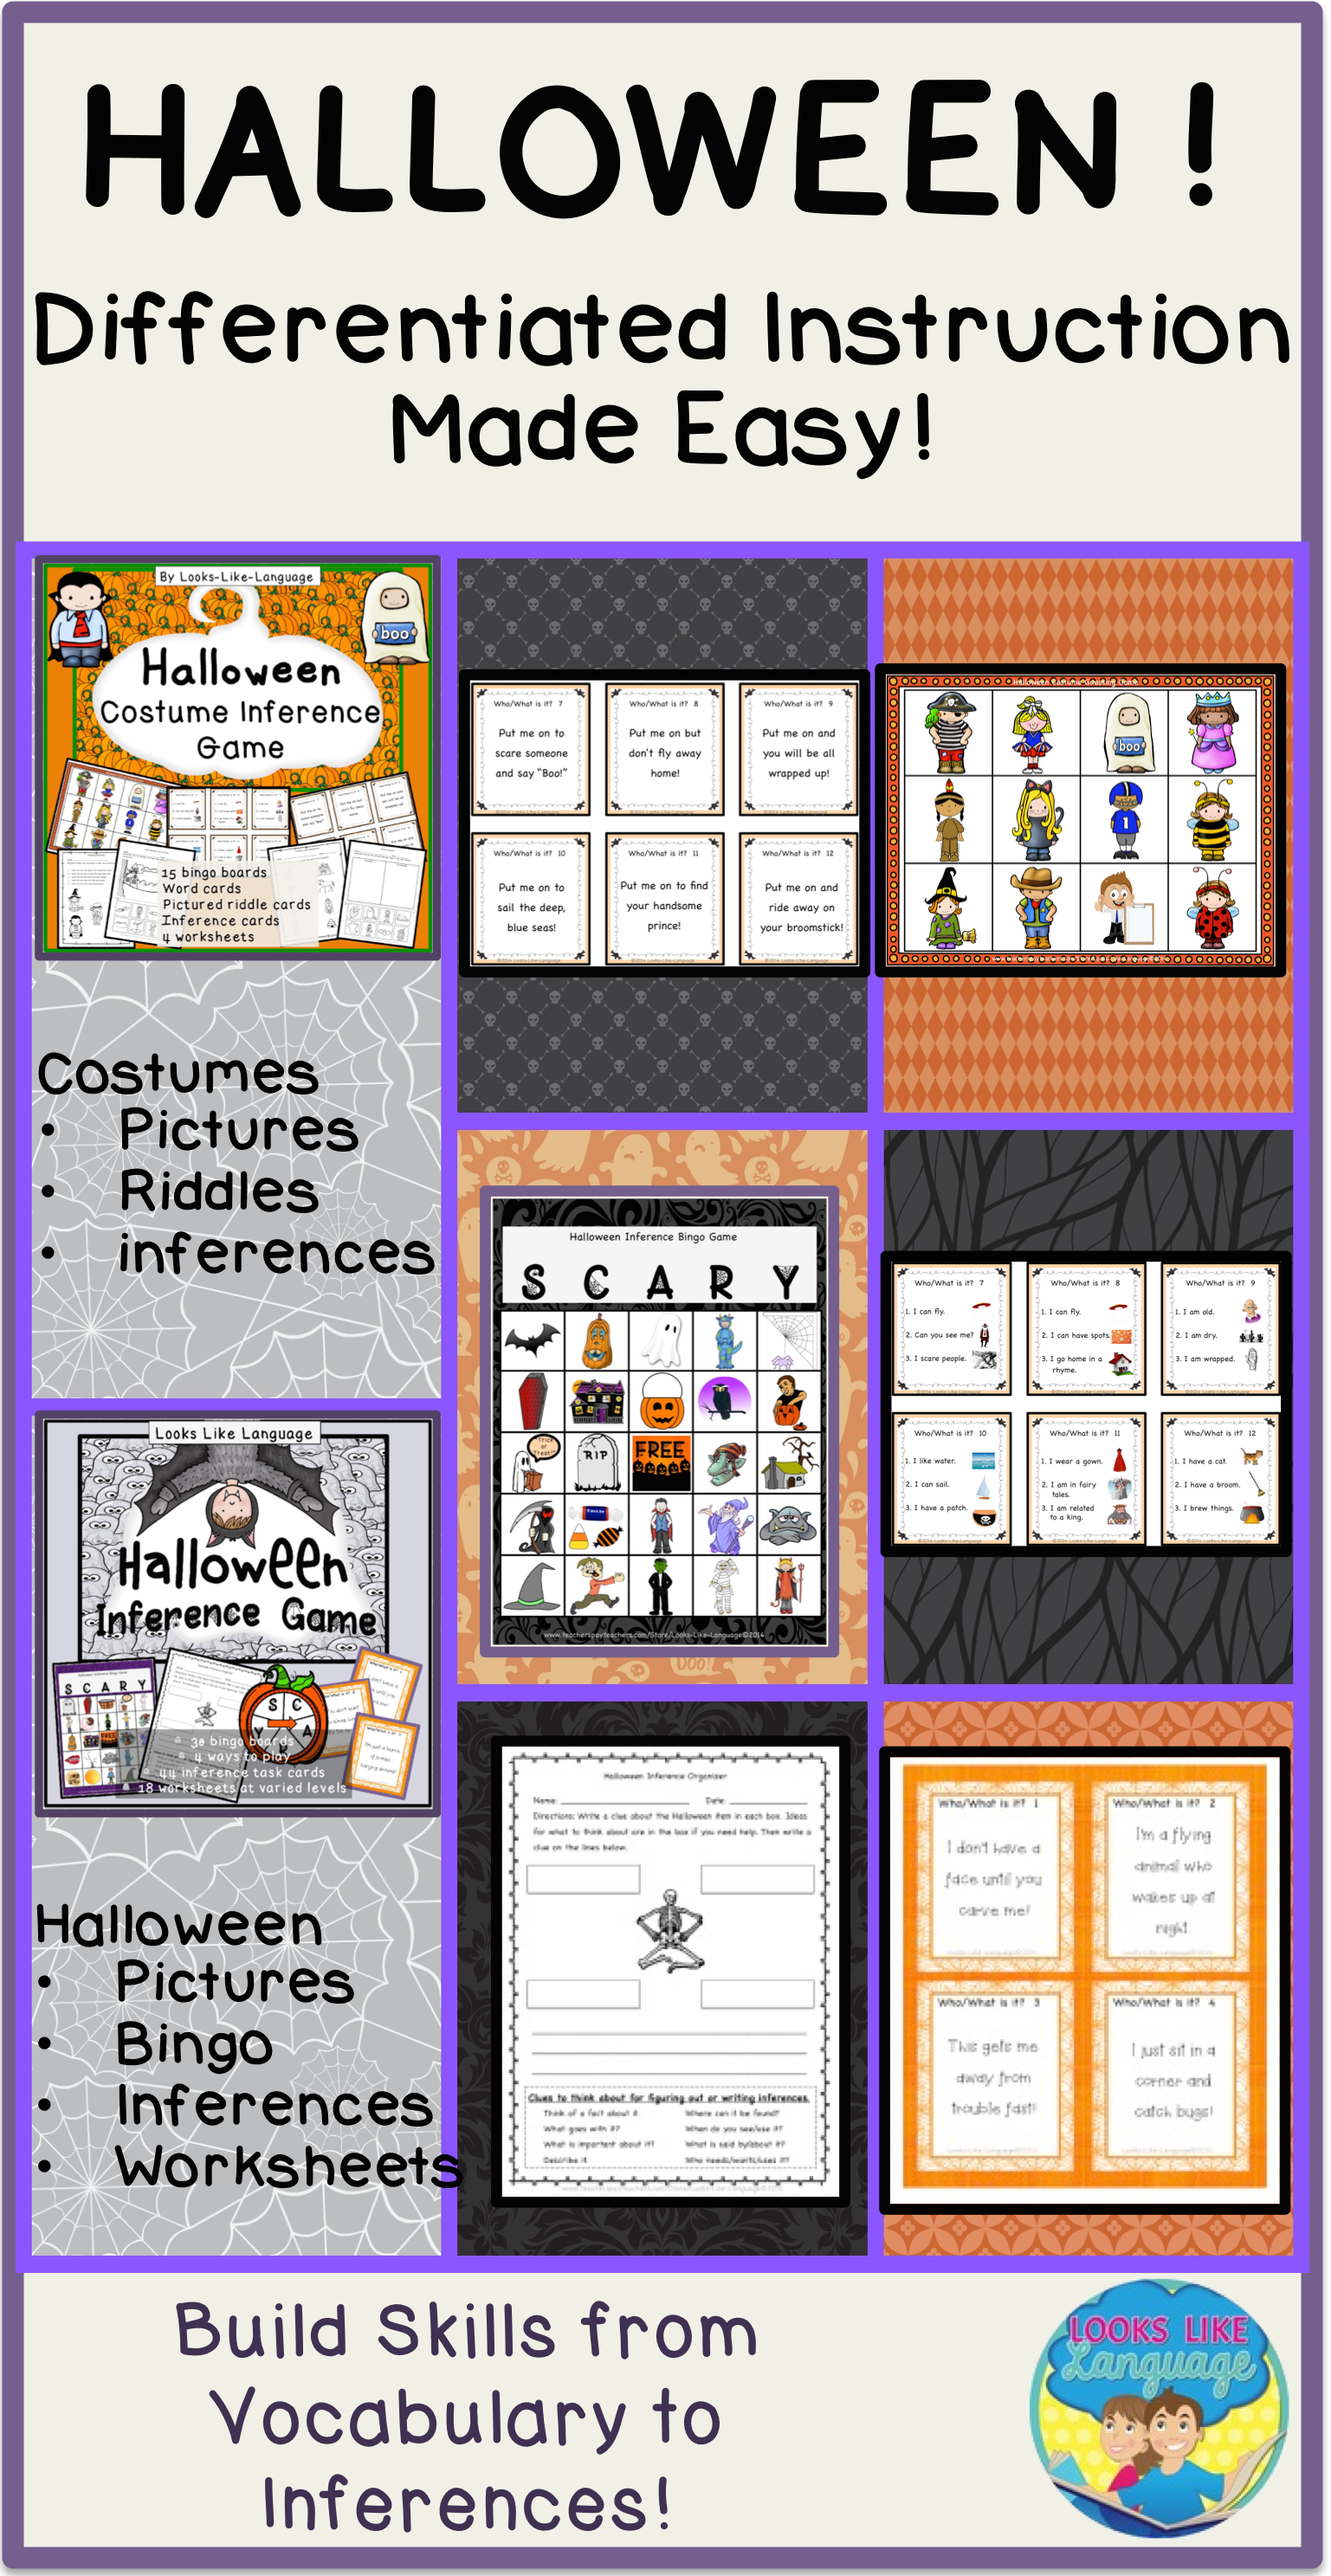 Fun Halloween Activities For Building Skills From Vocabulary To